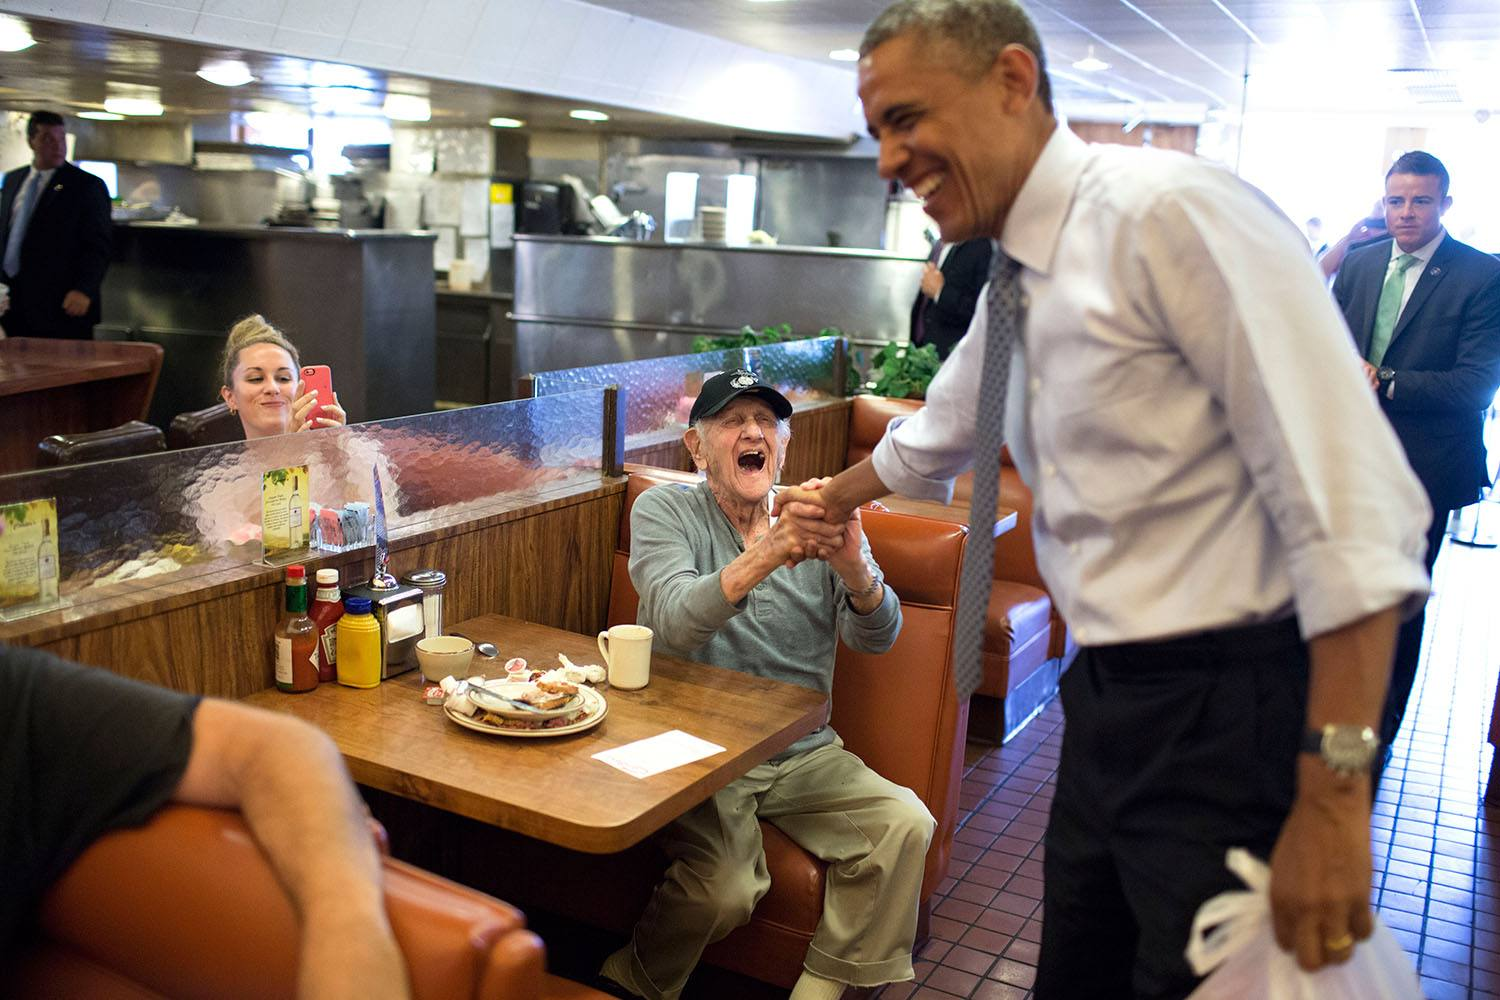 President Barack Obama at Canter's Deli